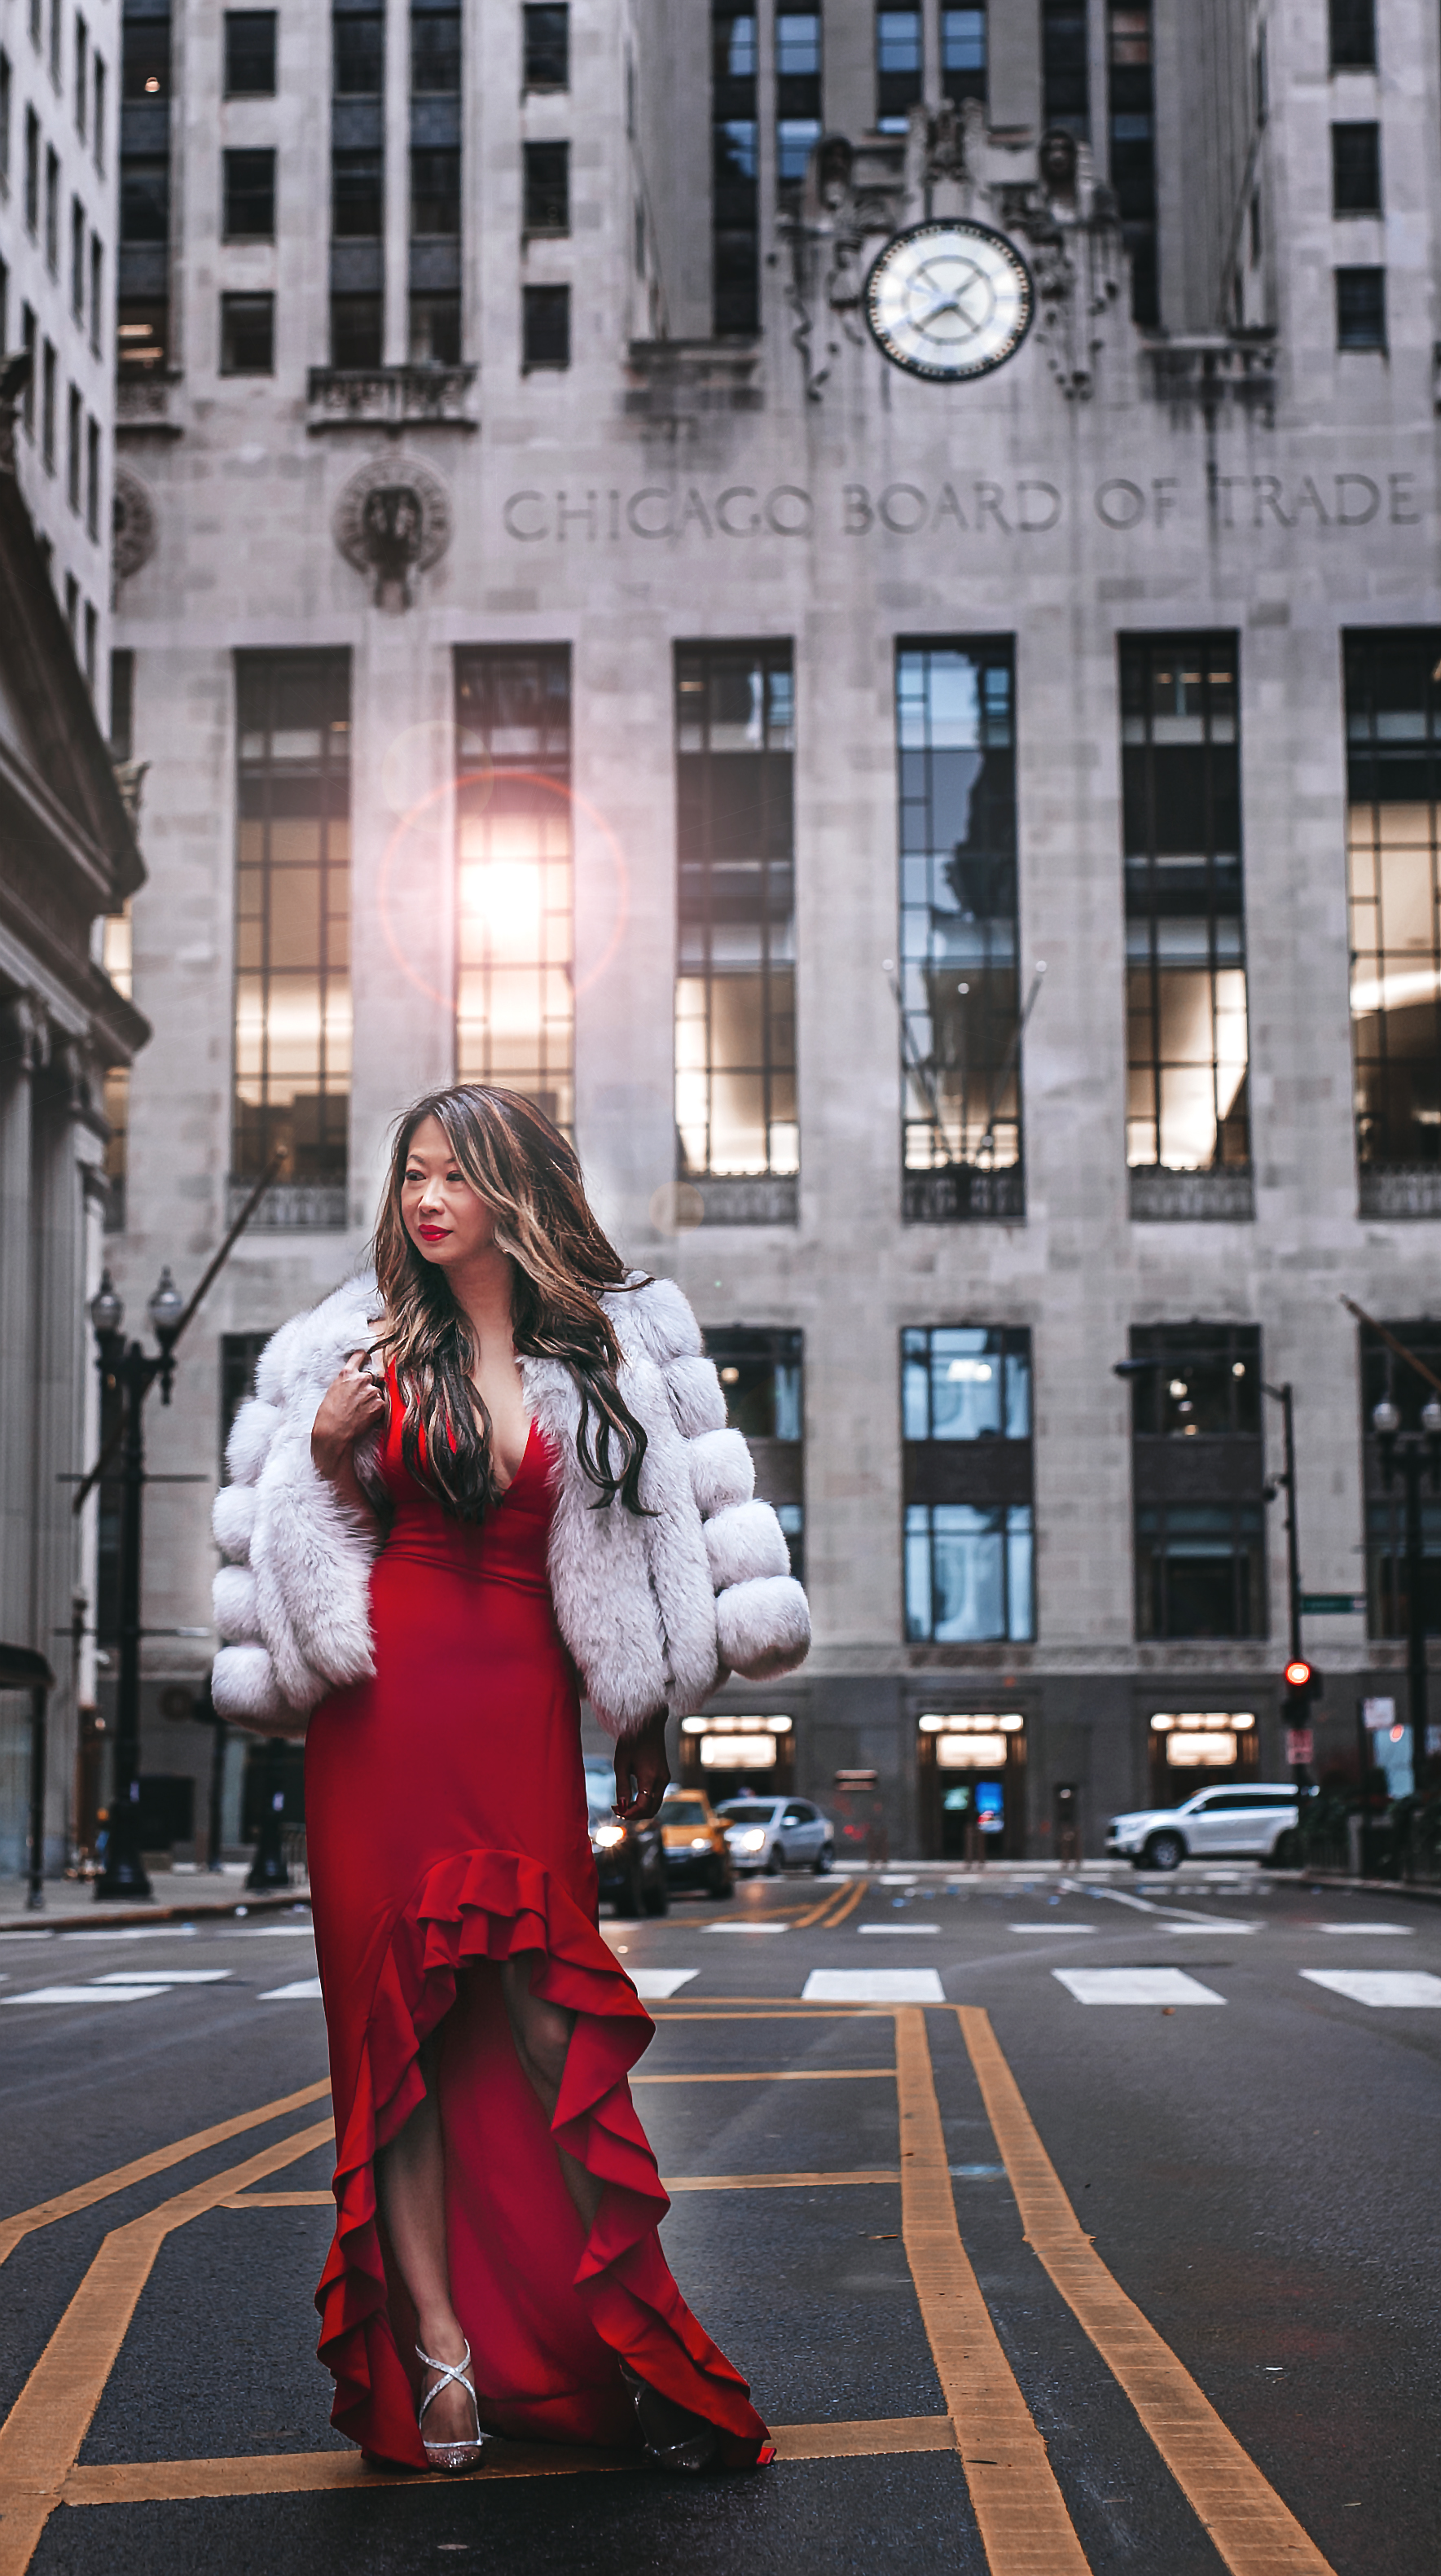 Chicago lifestyle blogger, chicago fashion blogger, jennifer worman, brooke montes, best chicago photographer, best family photographer chicago, revolve red dress, best holiday style